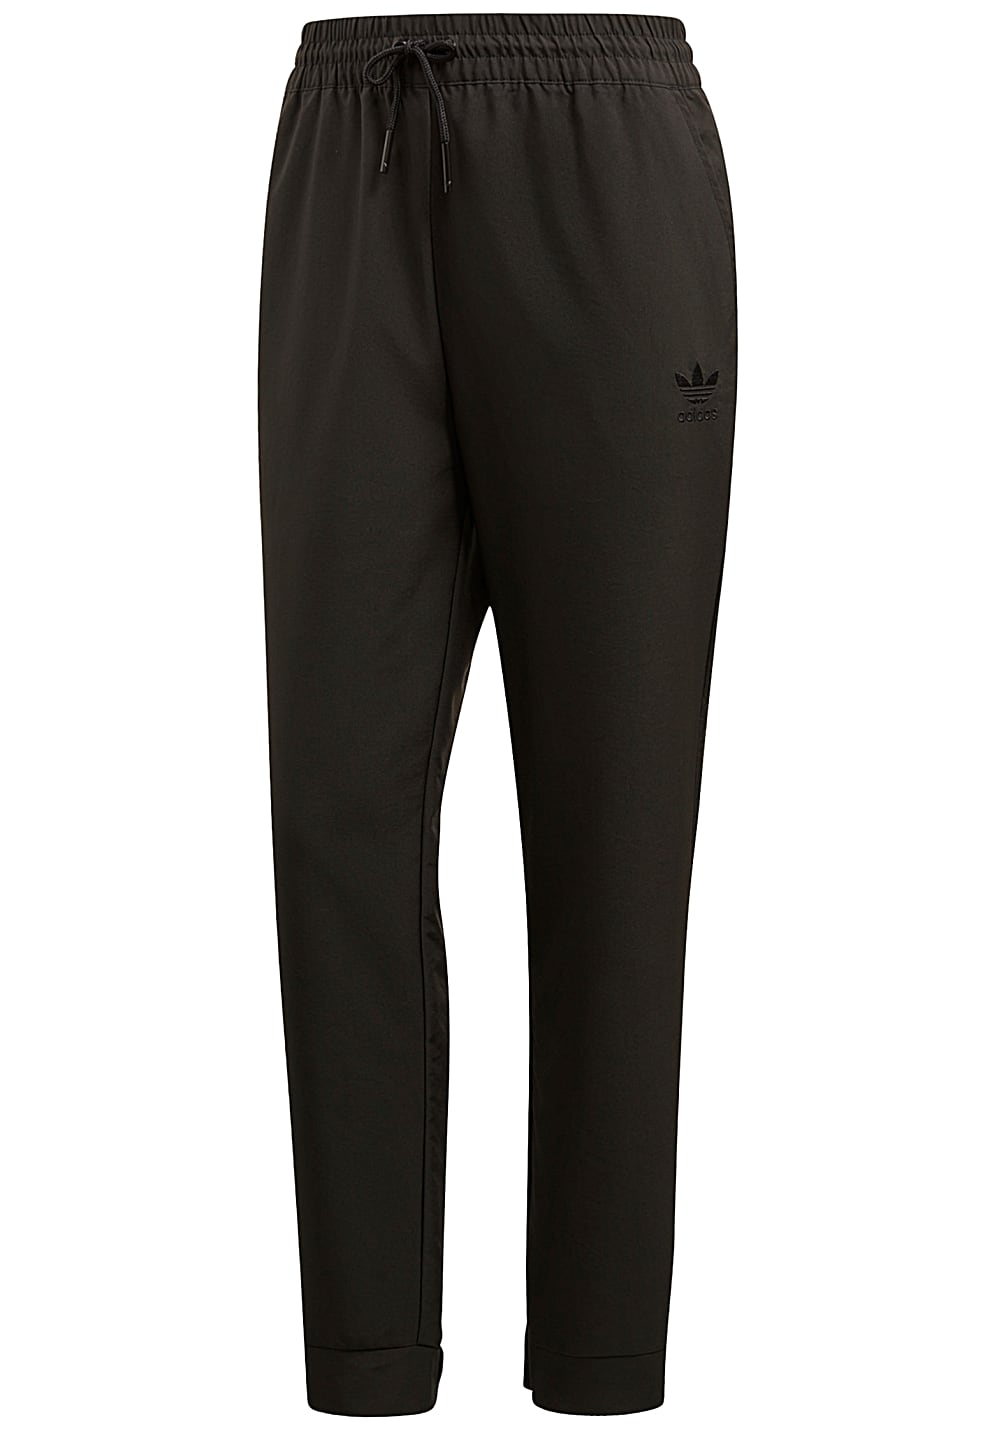 ADIDAS ORIGINALS Clrdo Trackpants for Women Black